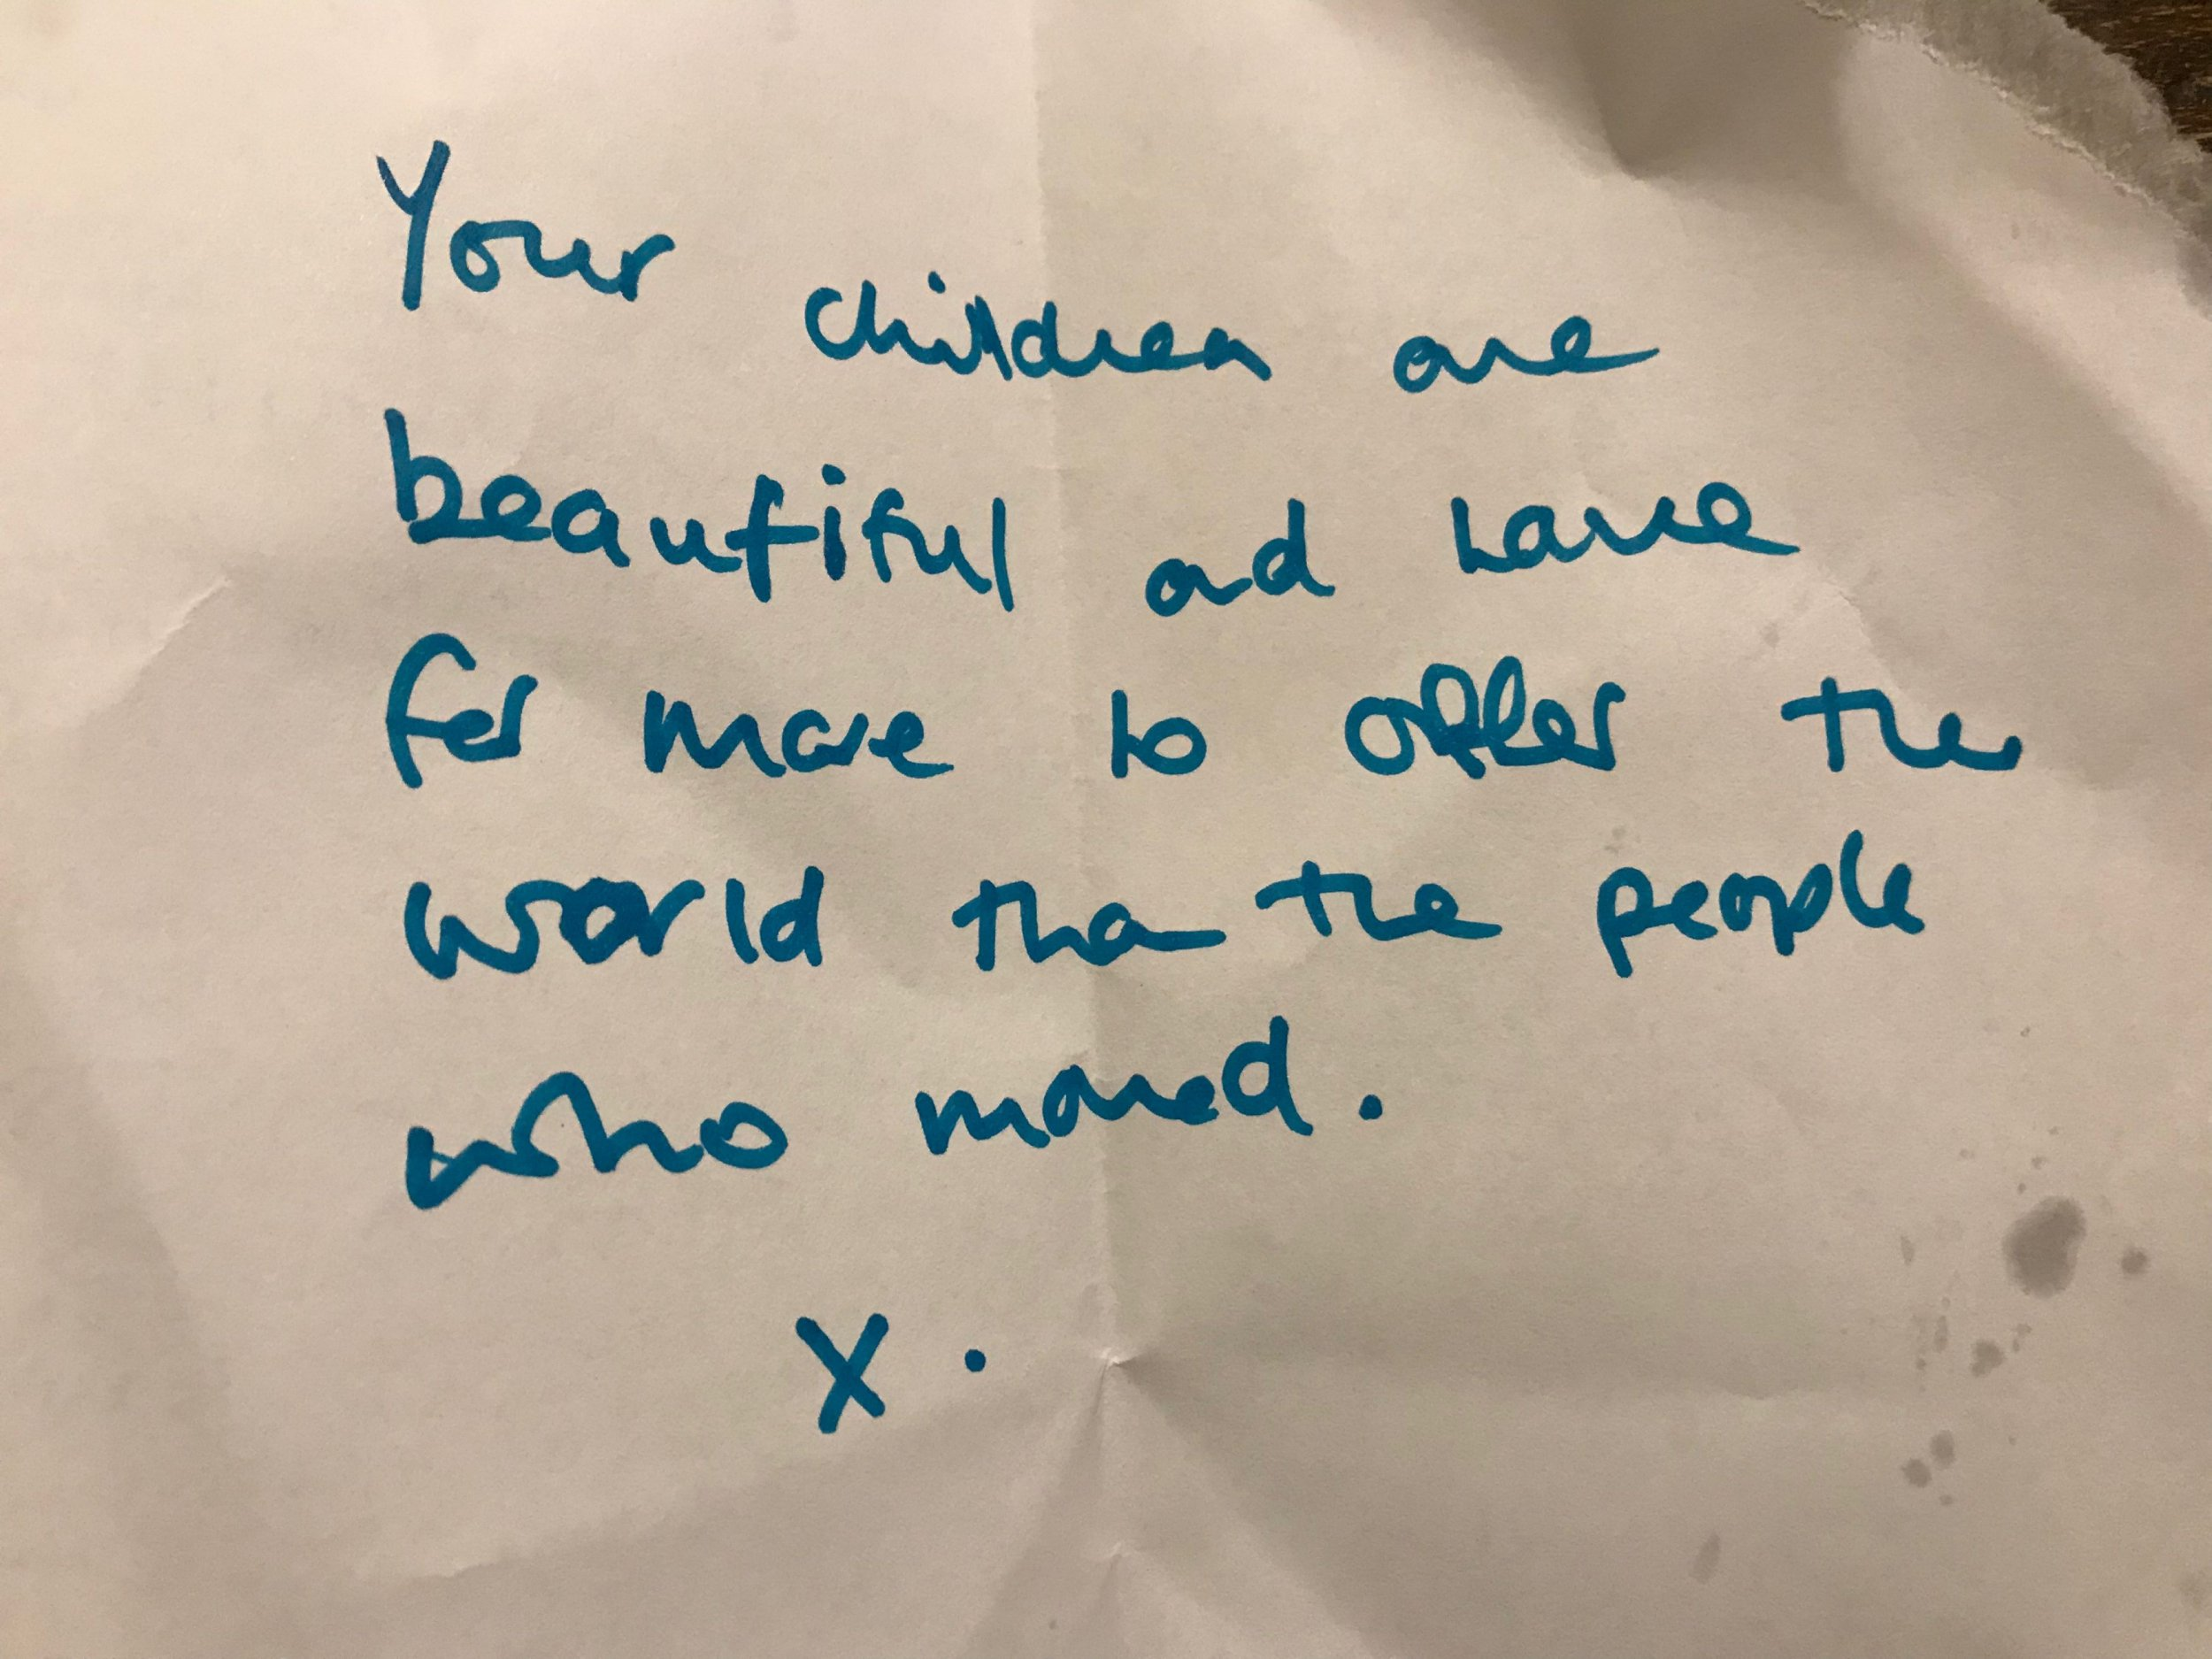 PIC FROM Kennedy News and Media (PICTURED: THE NOTE FROM A STRANGER THAT THE PARTIDGE FAMILY RECEIVED AFTER THEY WERE SHUNNED BY OTHER DINERS) A couple devastated when fellow diners shunned them due to their children were left near tears when a stranger's note claimed their kids had 'more to offer the world than the people who moved seats???. Charlotte and Richard Partridge were enjoying an early dinner at family-friendly restaurant Rockfish in Brixham, Devon, earlier this month [NOV 17] when a couple two tables away asked to be moved. The mum-of-two claims it was 'soul destroying' to see the pair, believed to be in their late 60s or early 70s, move despite Thomas, three, and Lily, two, sitting and colouring quietly. SEE KENNEDY NEWS COPY - 0161 697 4266